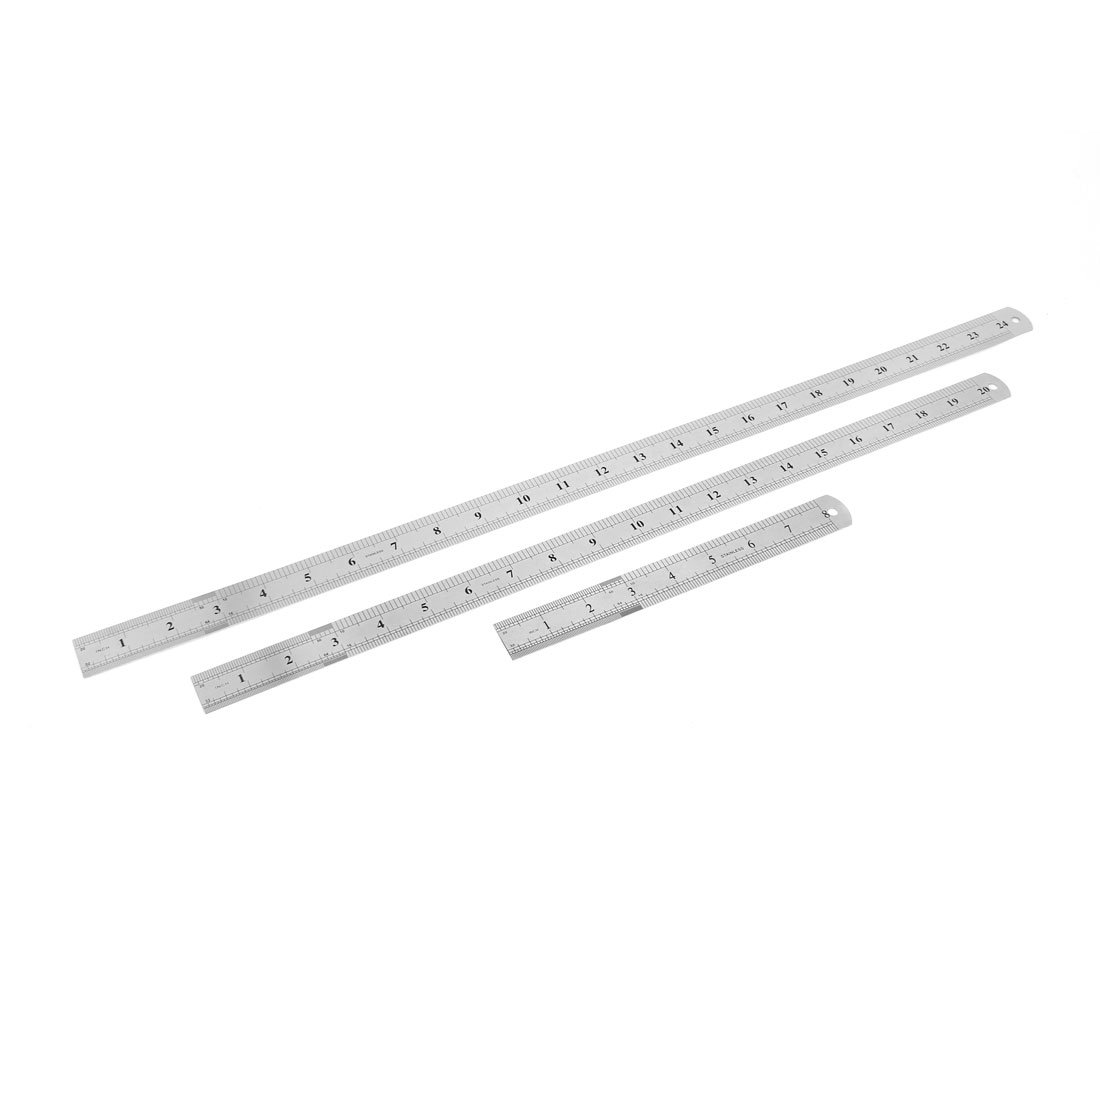 Uxcell Double Sides Straight Ruler, 20cm 50cm 60cm, 3 in 1, Silver Tone